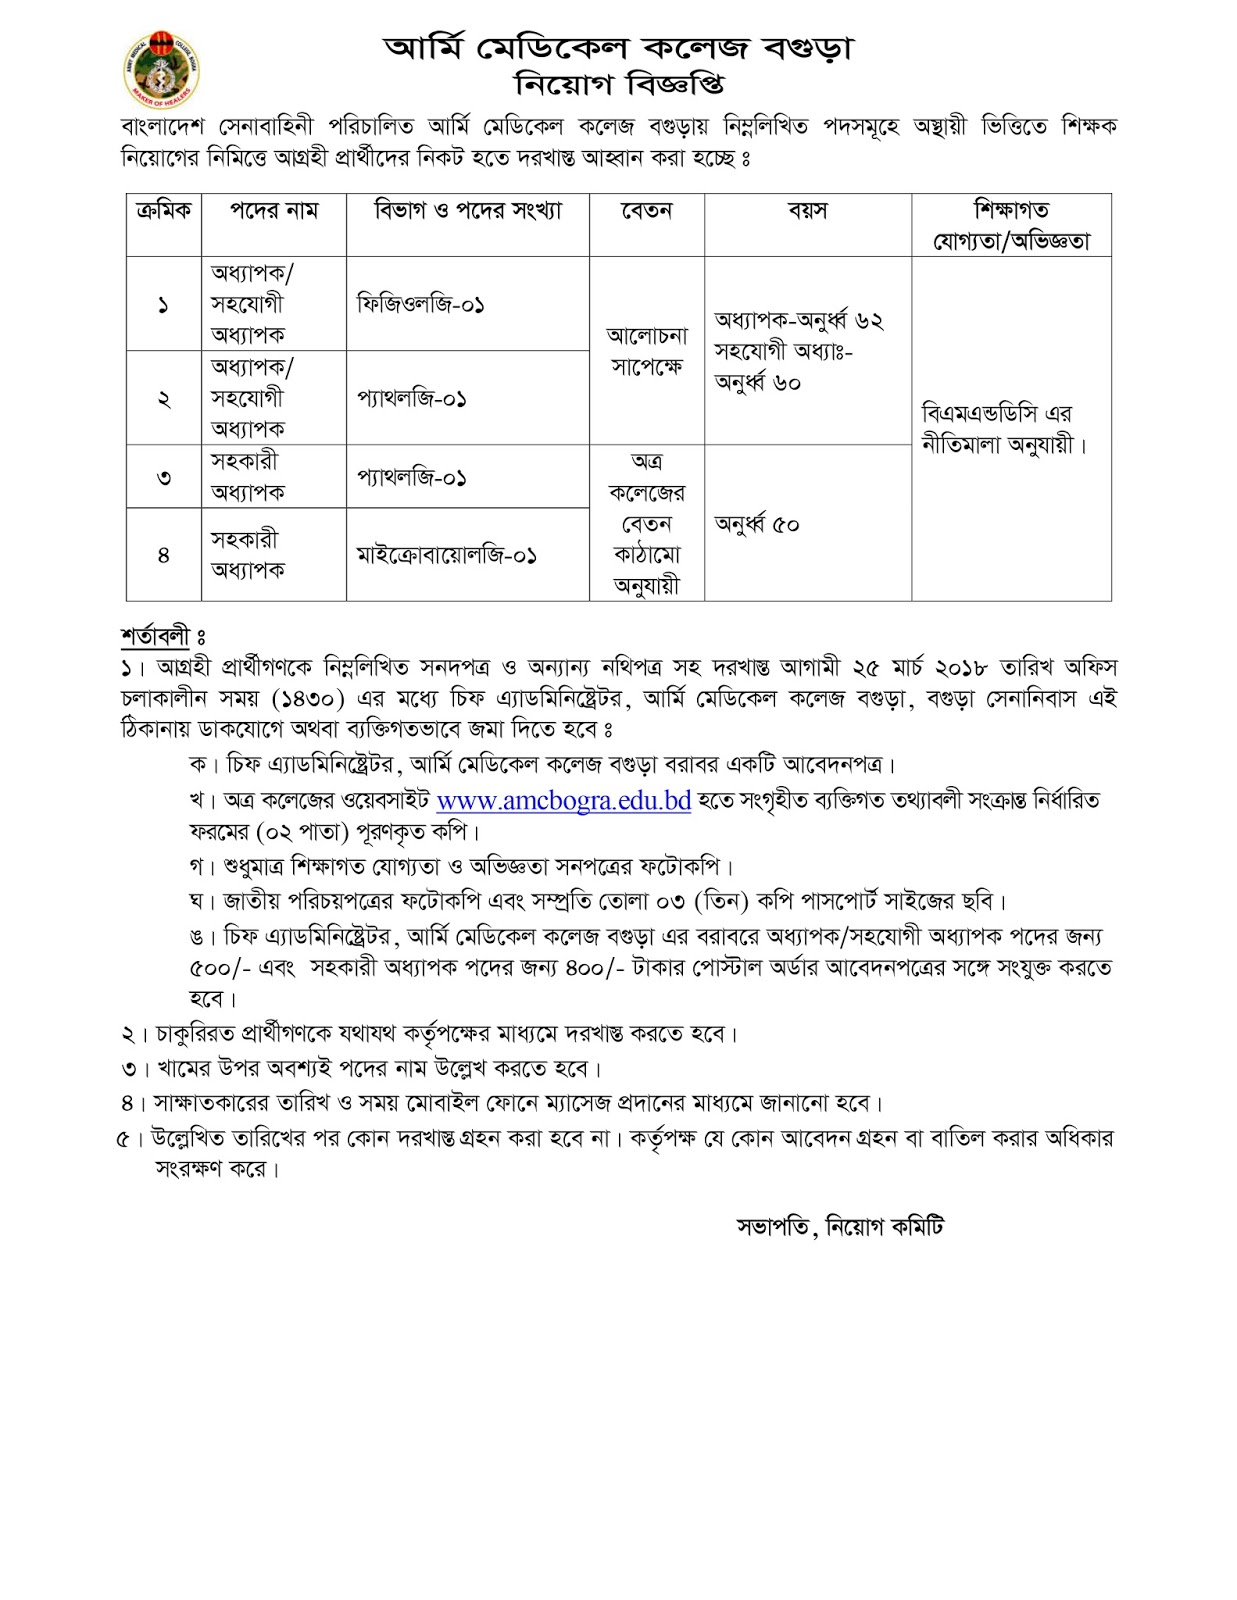 Army Medical College Bogra Professor Recruitment Circular 2018